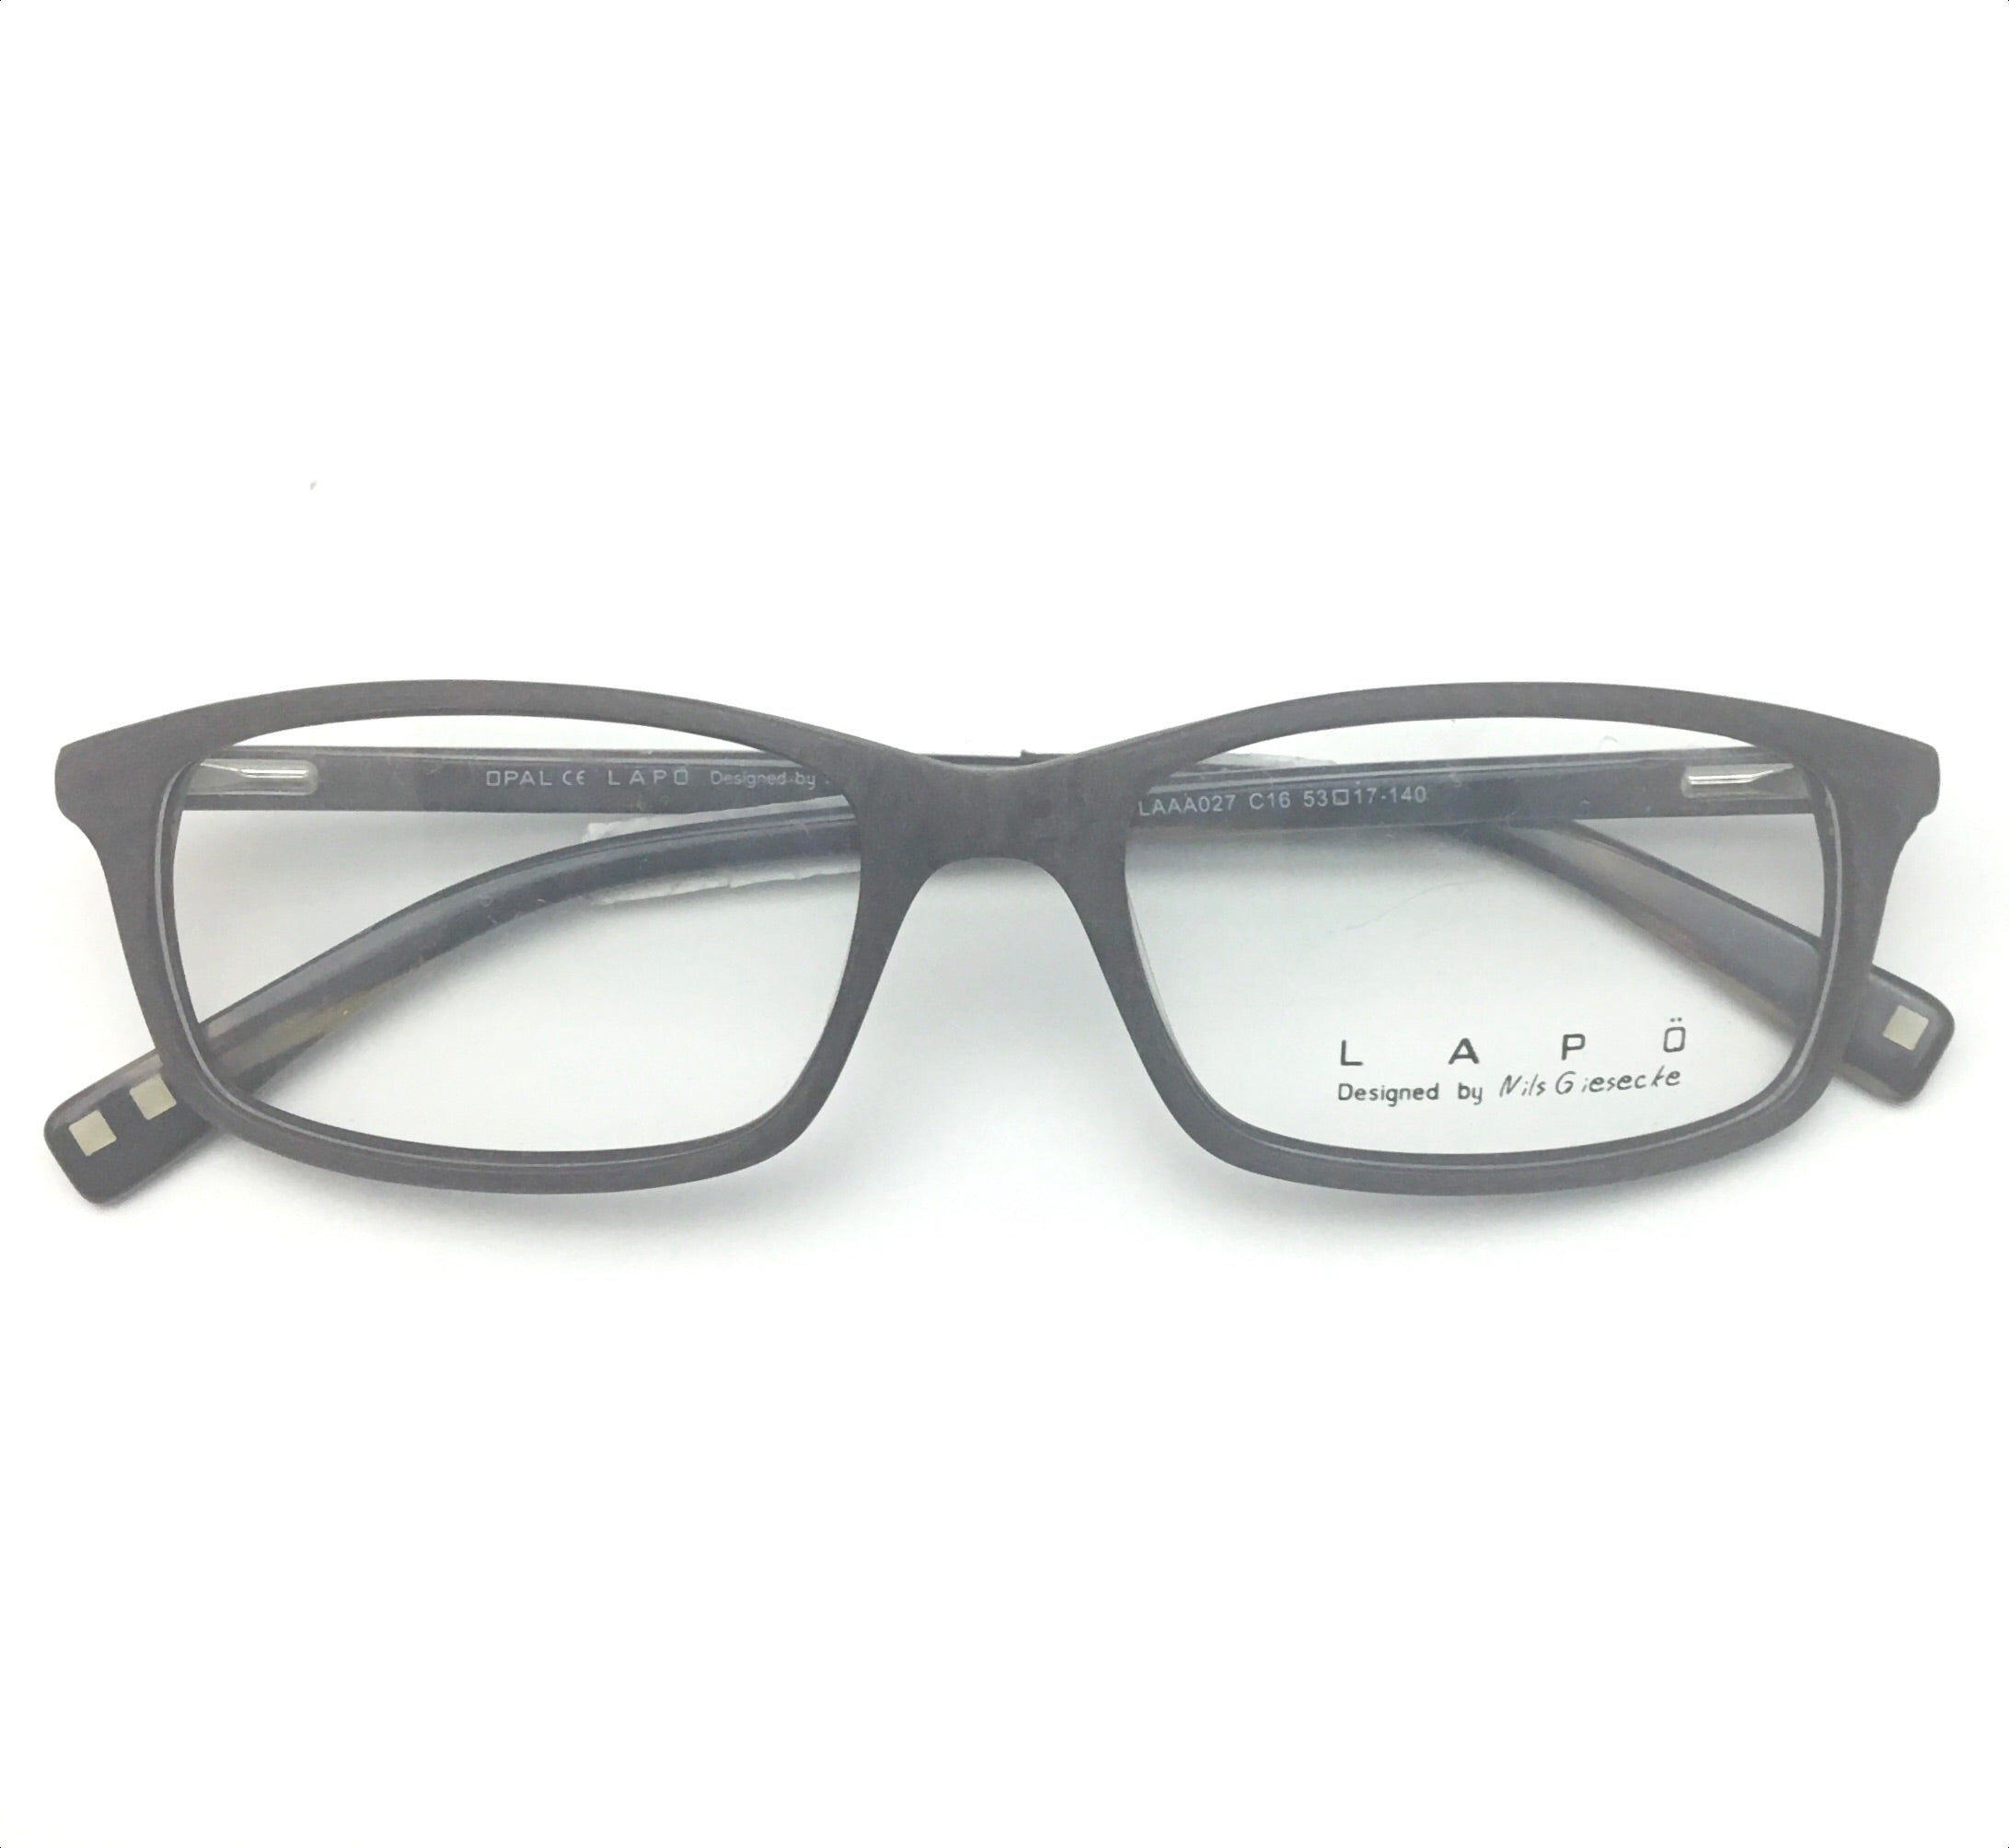 Lapo Glasses $149 ITALY E22